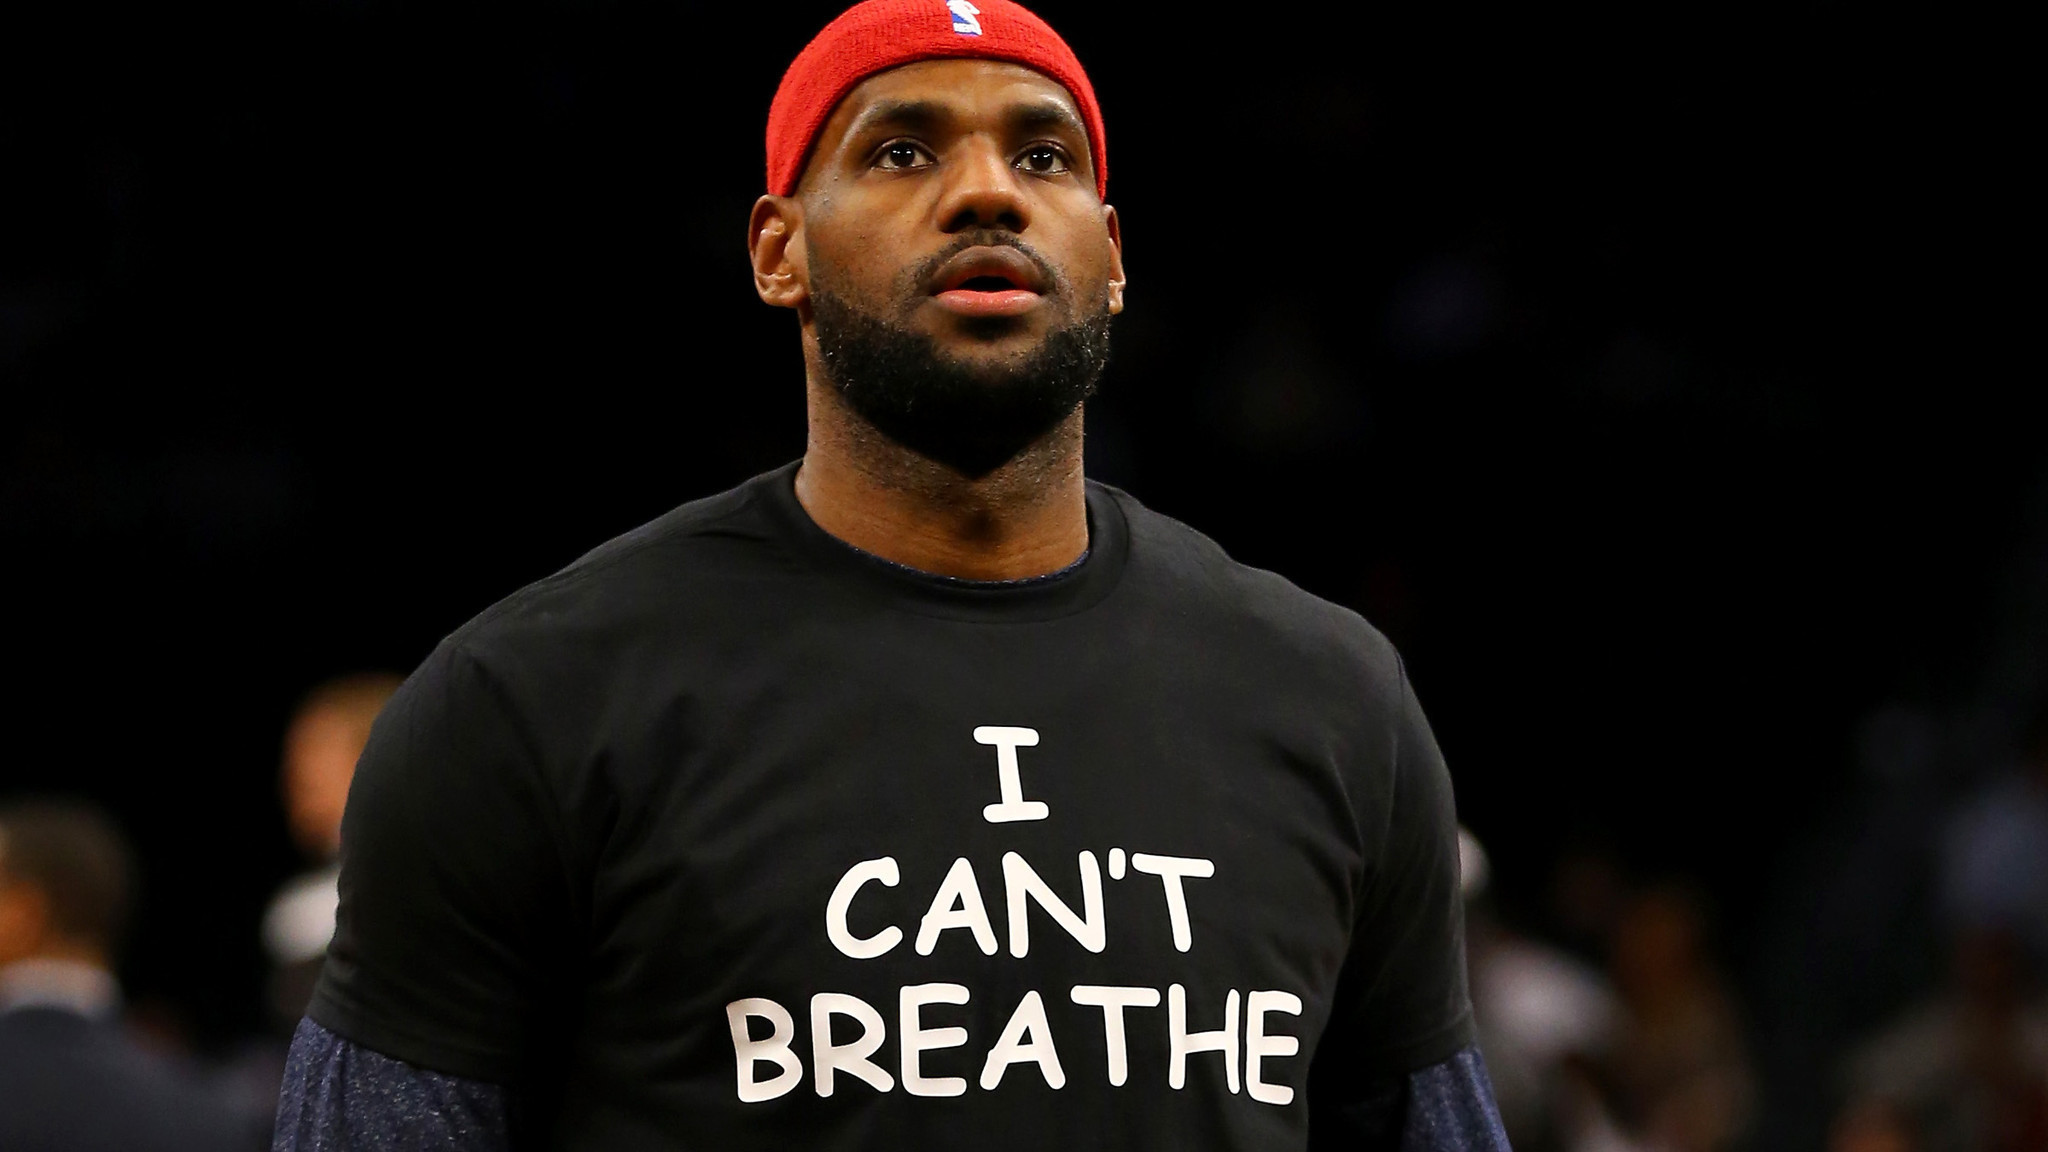 Activists question LeBron James' position in Tamir Rice ...